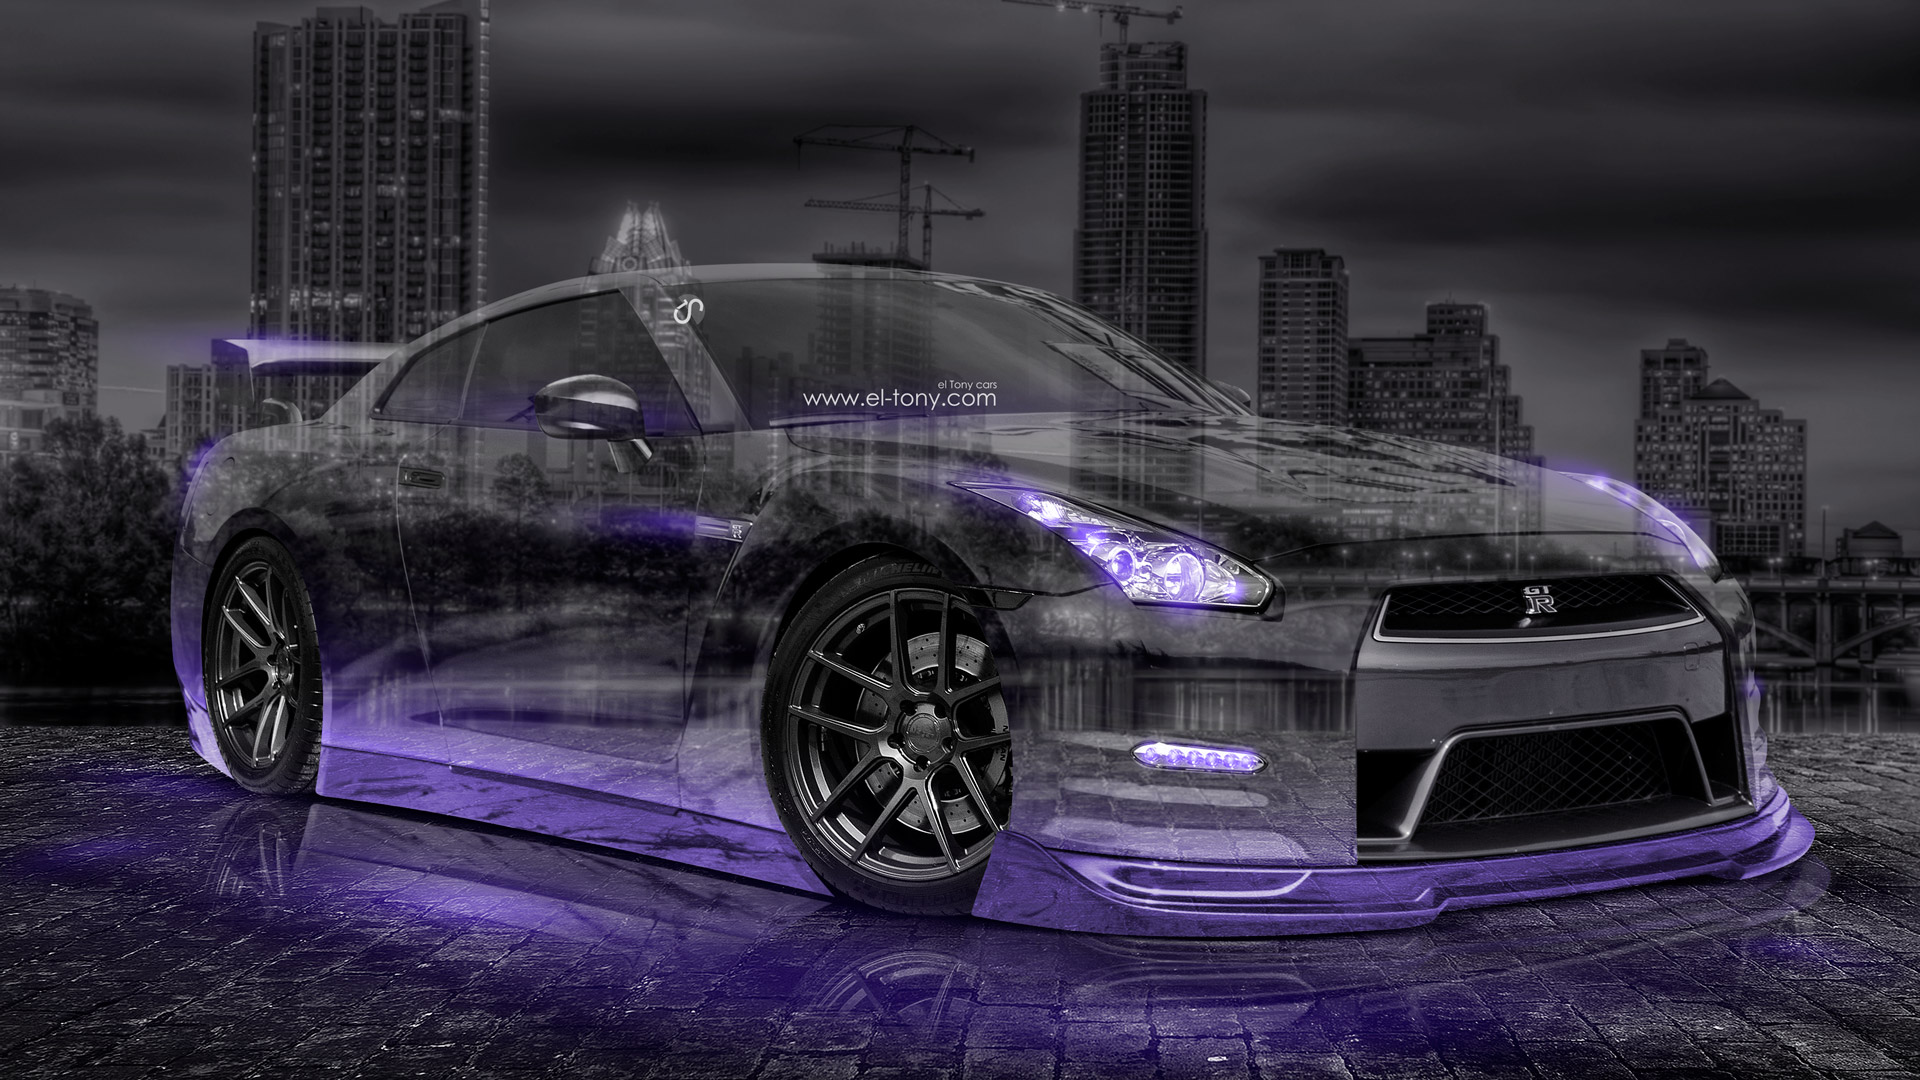 Beautiful «Nissan GTR R35 JDM 3D Crystal City Car 2015 Violet Neon Colors HD Wallpapers Design By Tony Kokhan Www.el Tony.com Image  (1920×1080) Nissan GTR R35 JDM ...